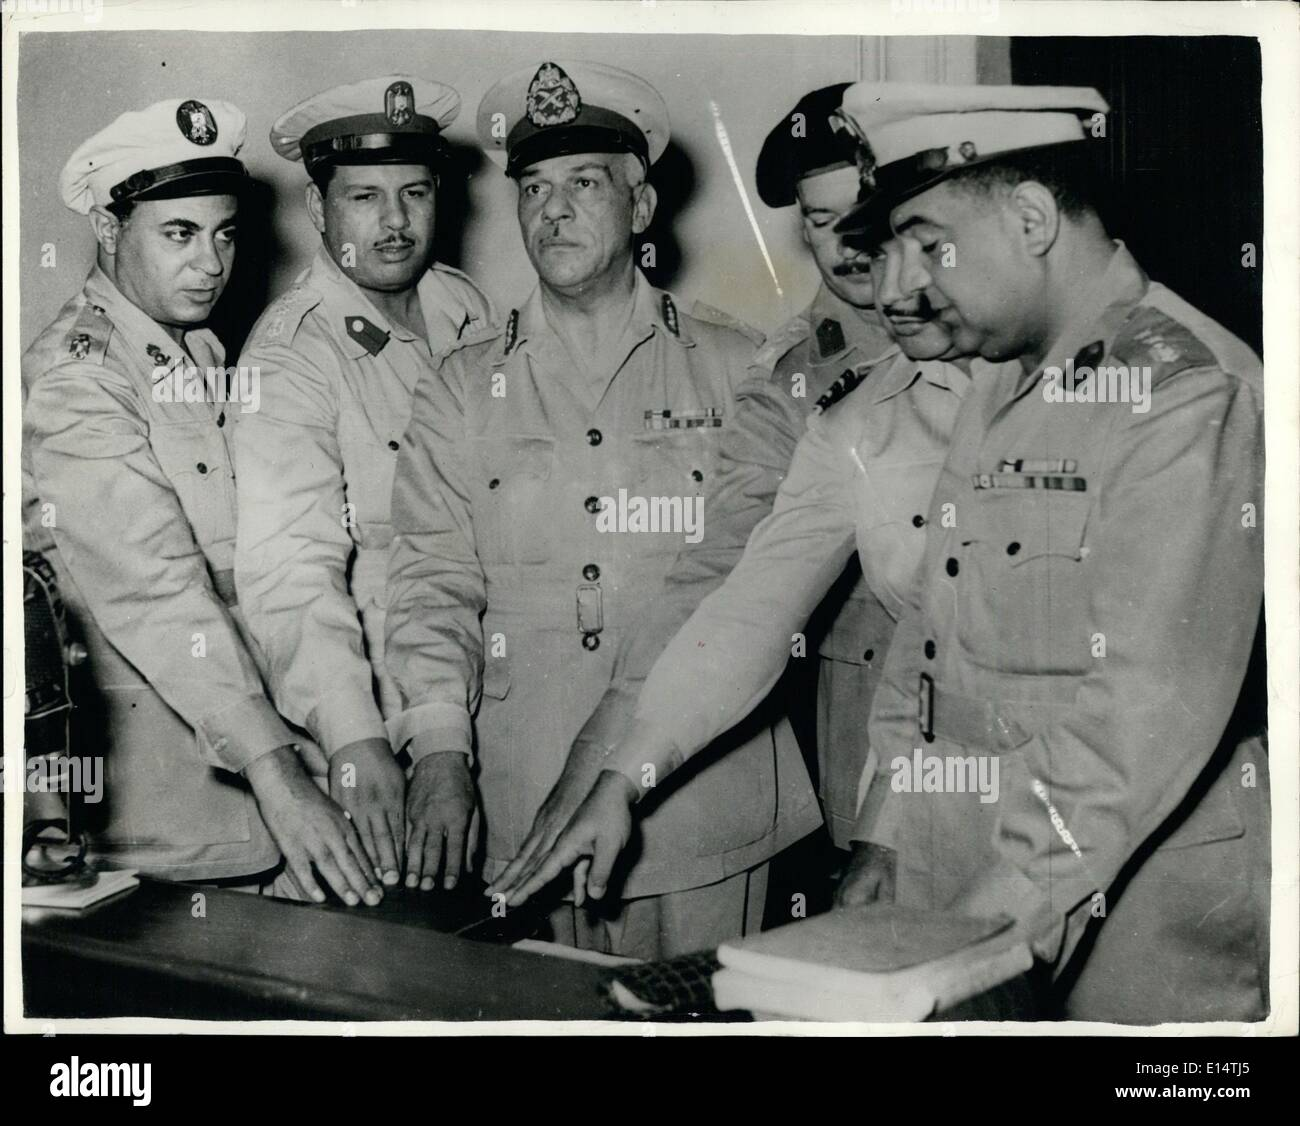 Apr. 18, 2012 - Twelve Accused In Cairo Conspiracy Case.. Alleged Plot To Kill President Nasser. Twelve people are facing trial - Stock Image